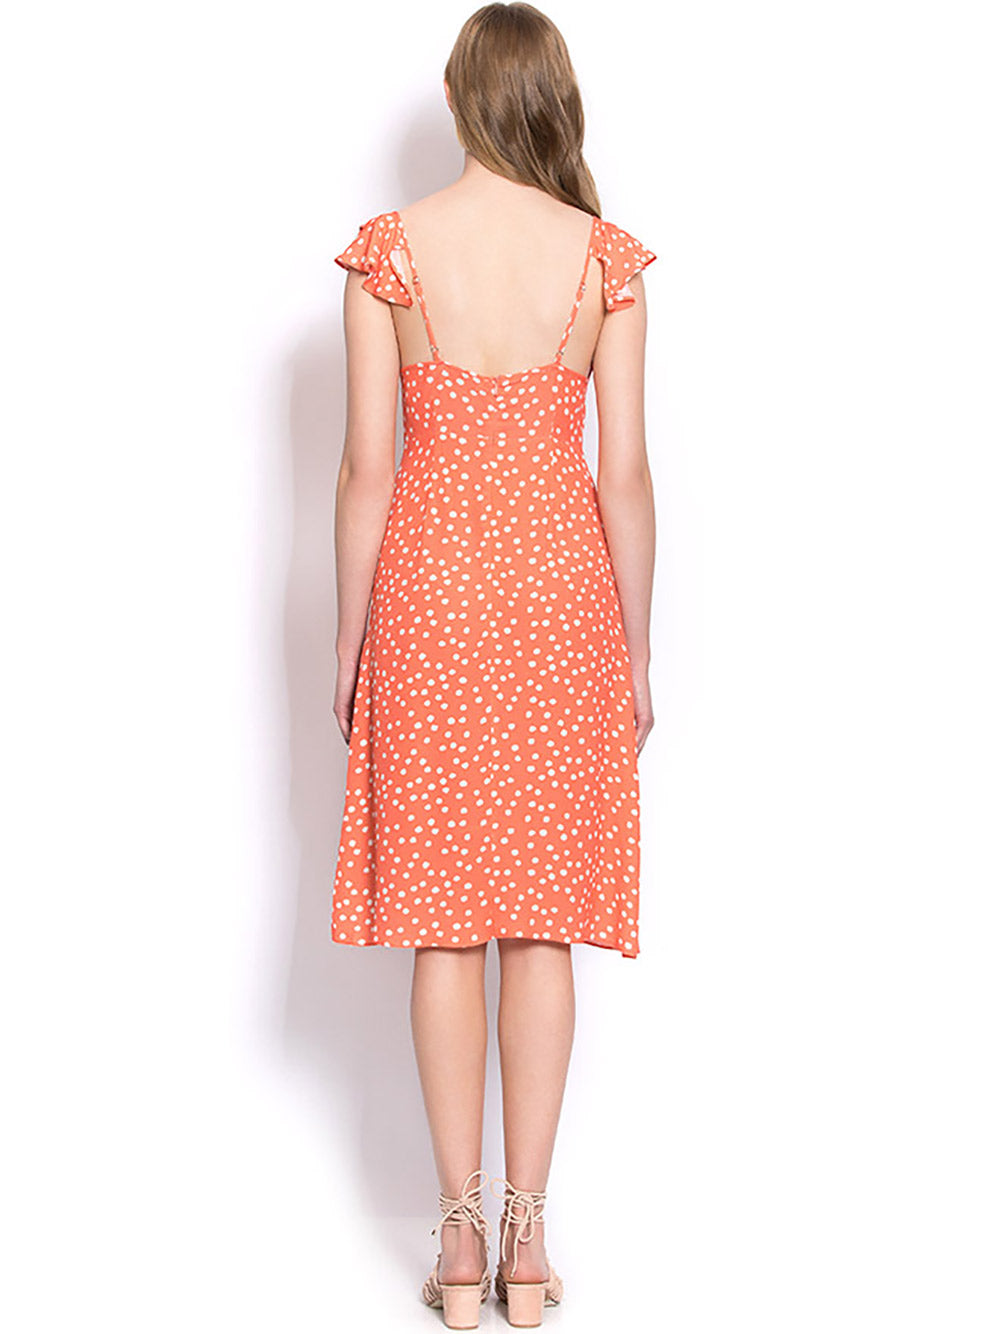 WISH Poppie Dress